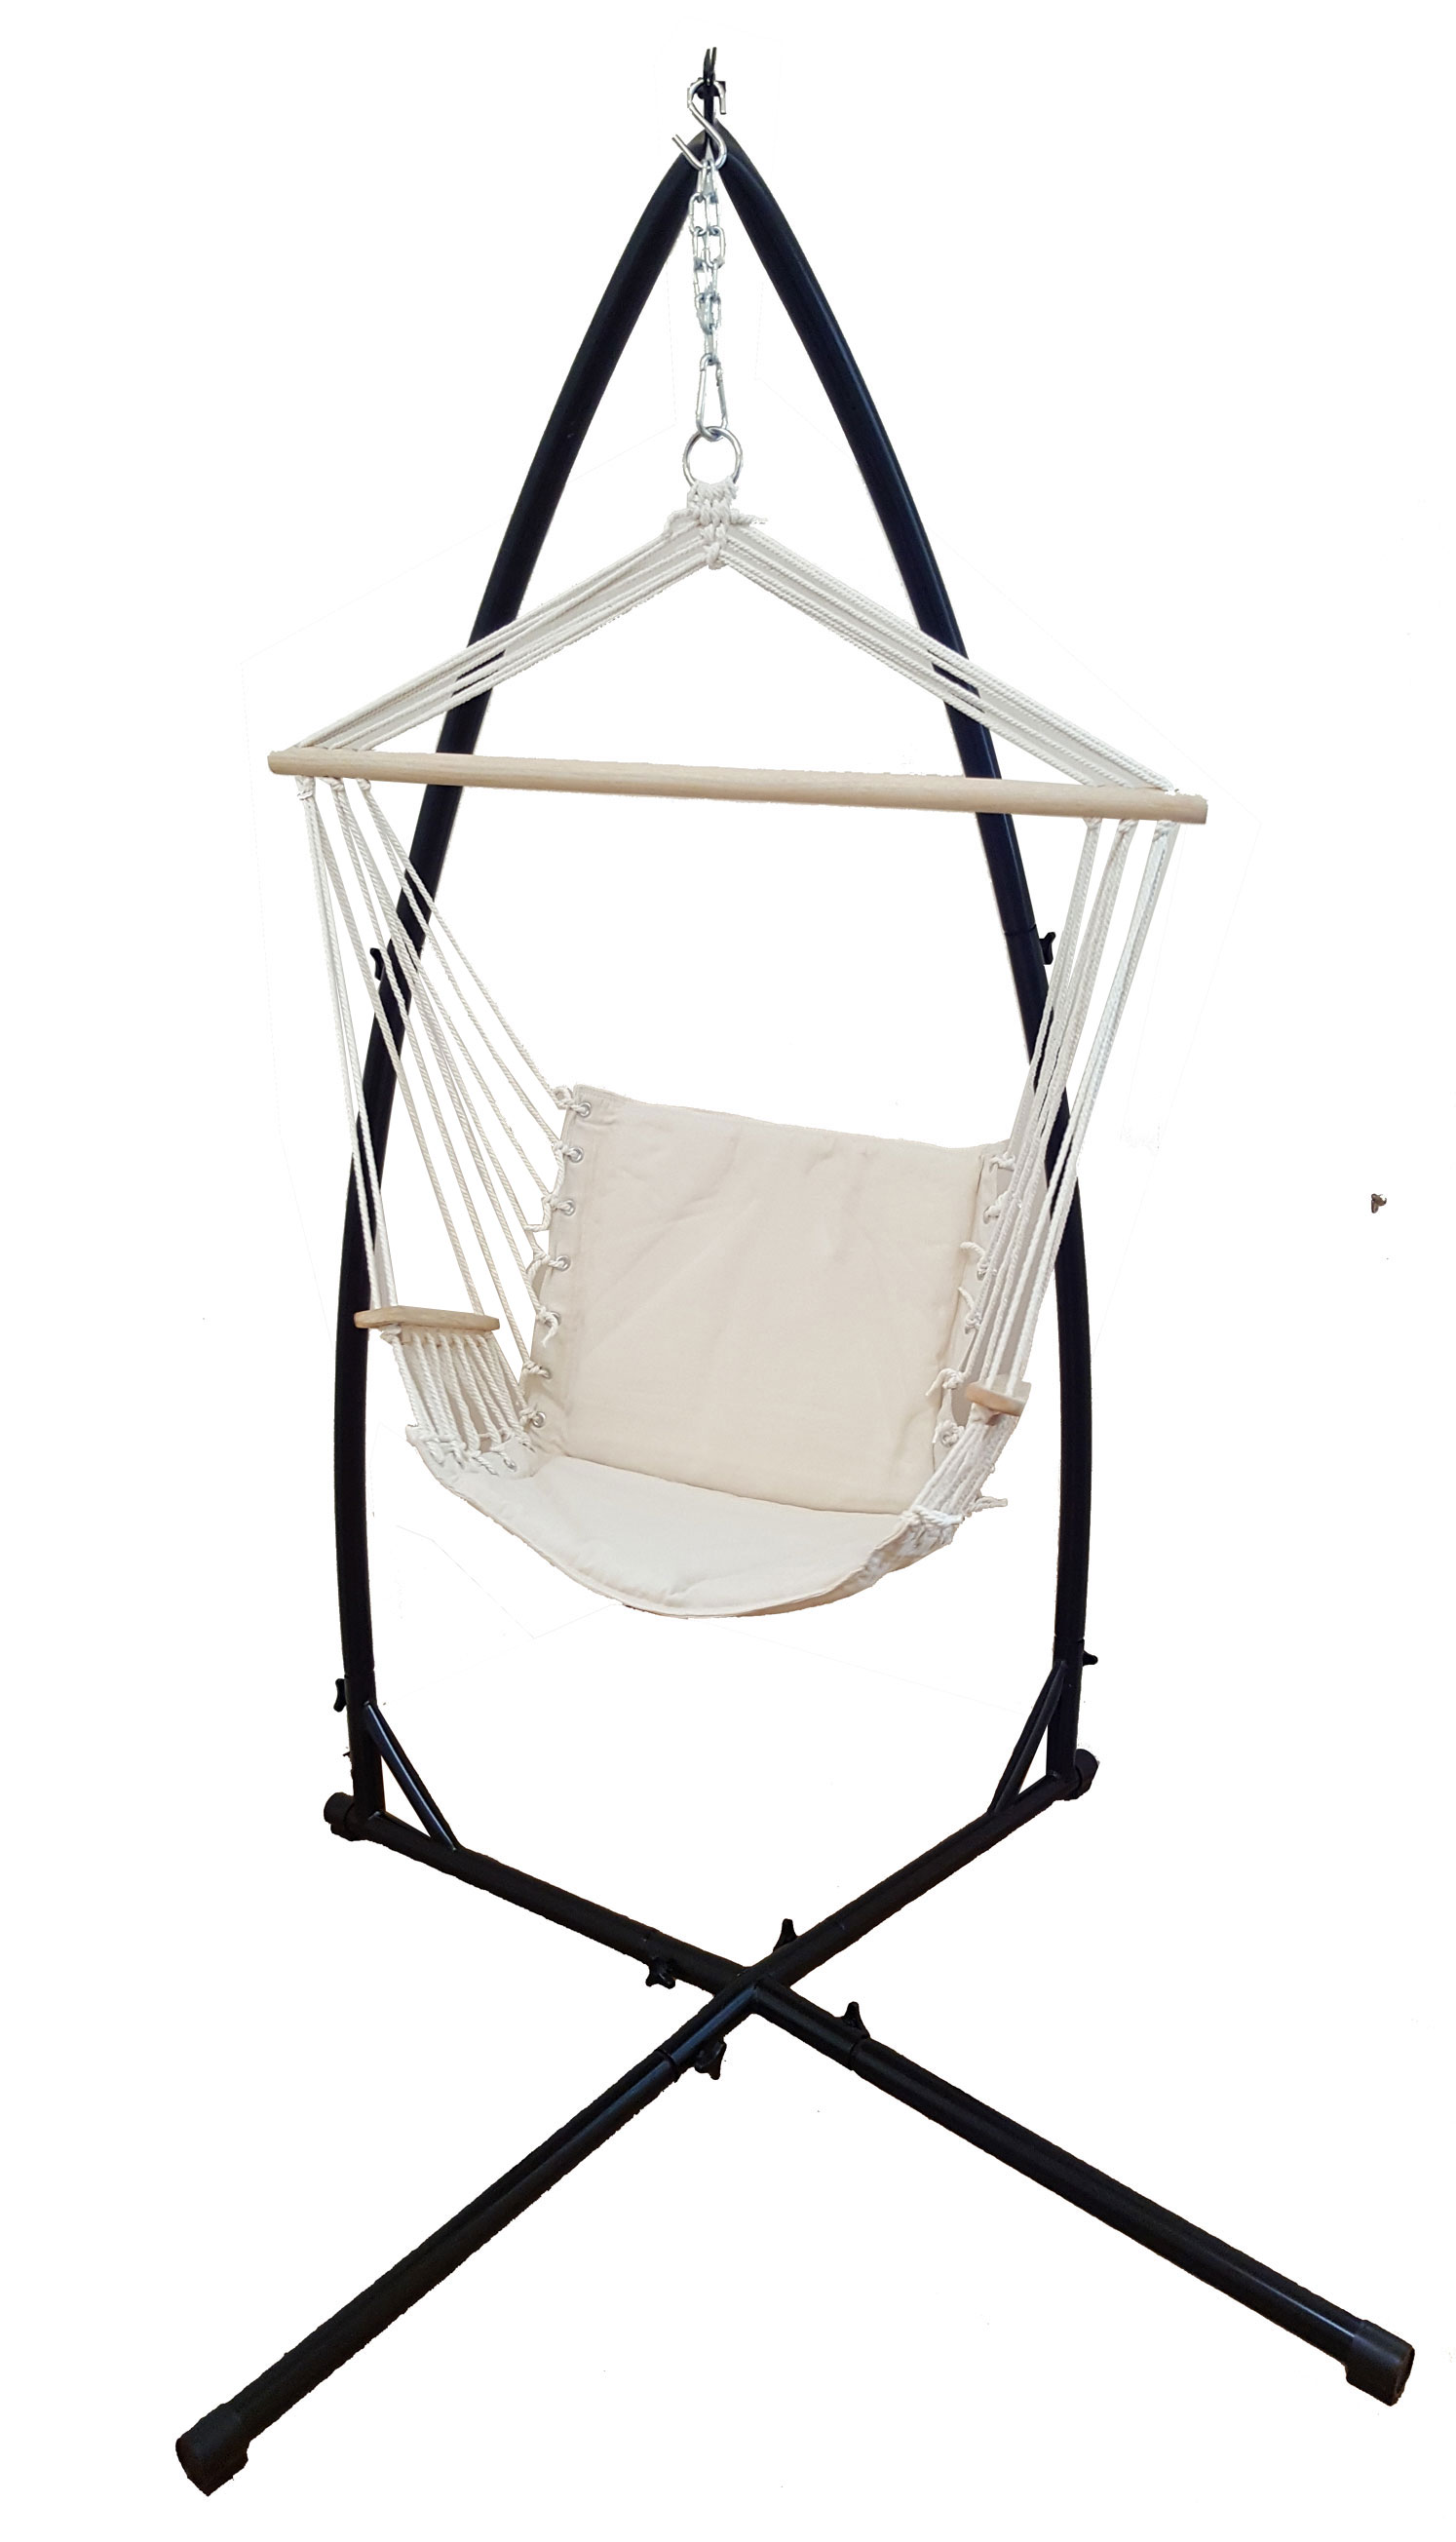 Beige Padded Hammock Chair With Wooden Arm Rests With